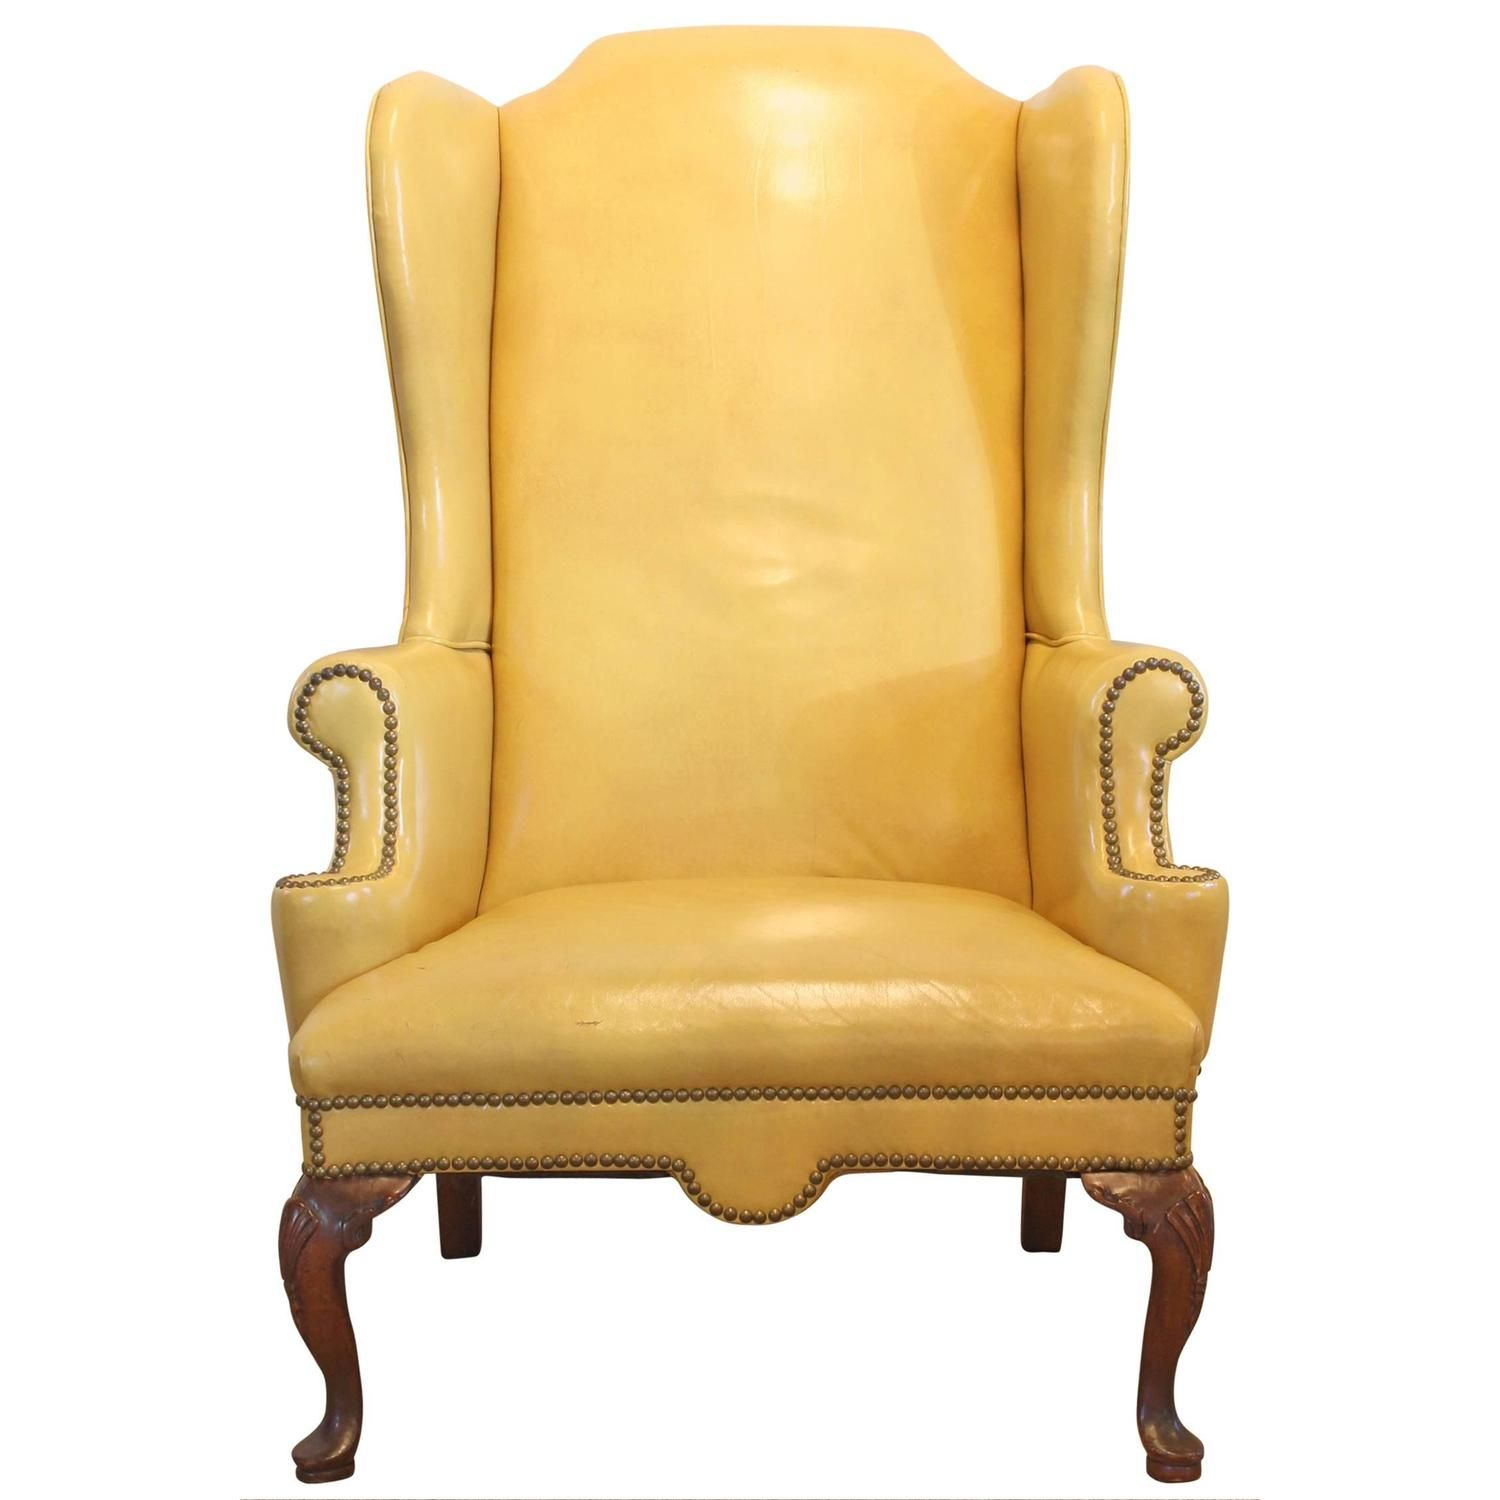 Lovely Mustard Yellow Leather Wing Chair